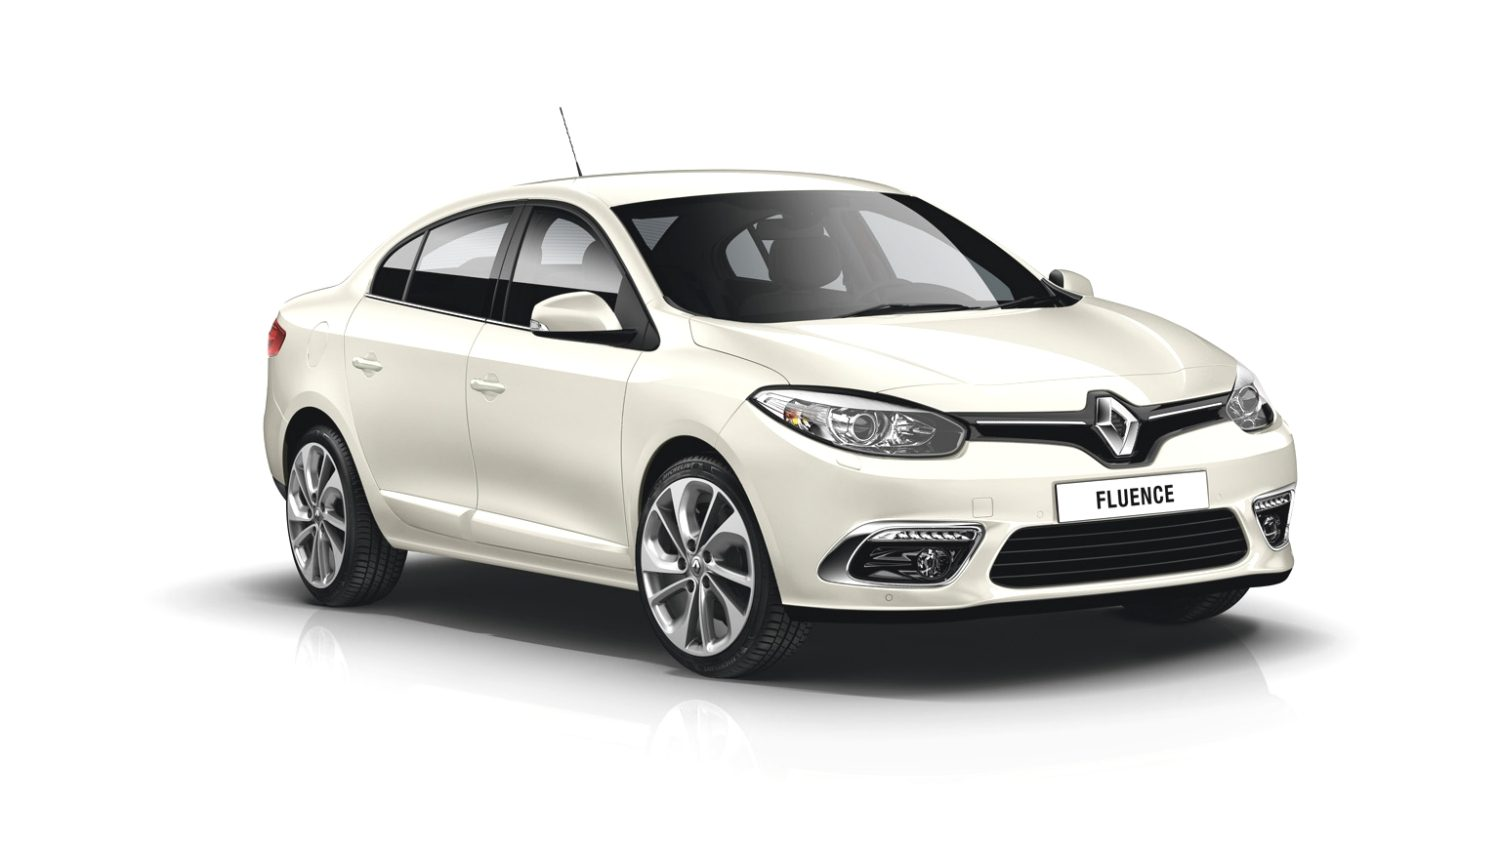 Renault fluence otomatic